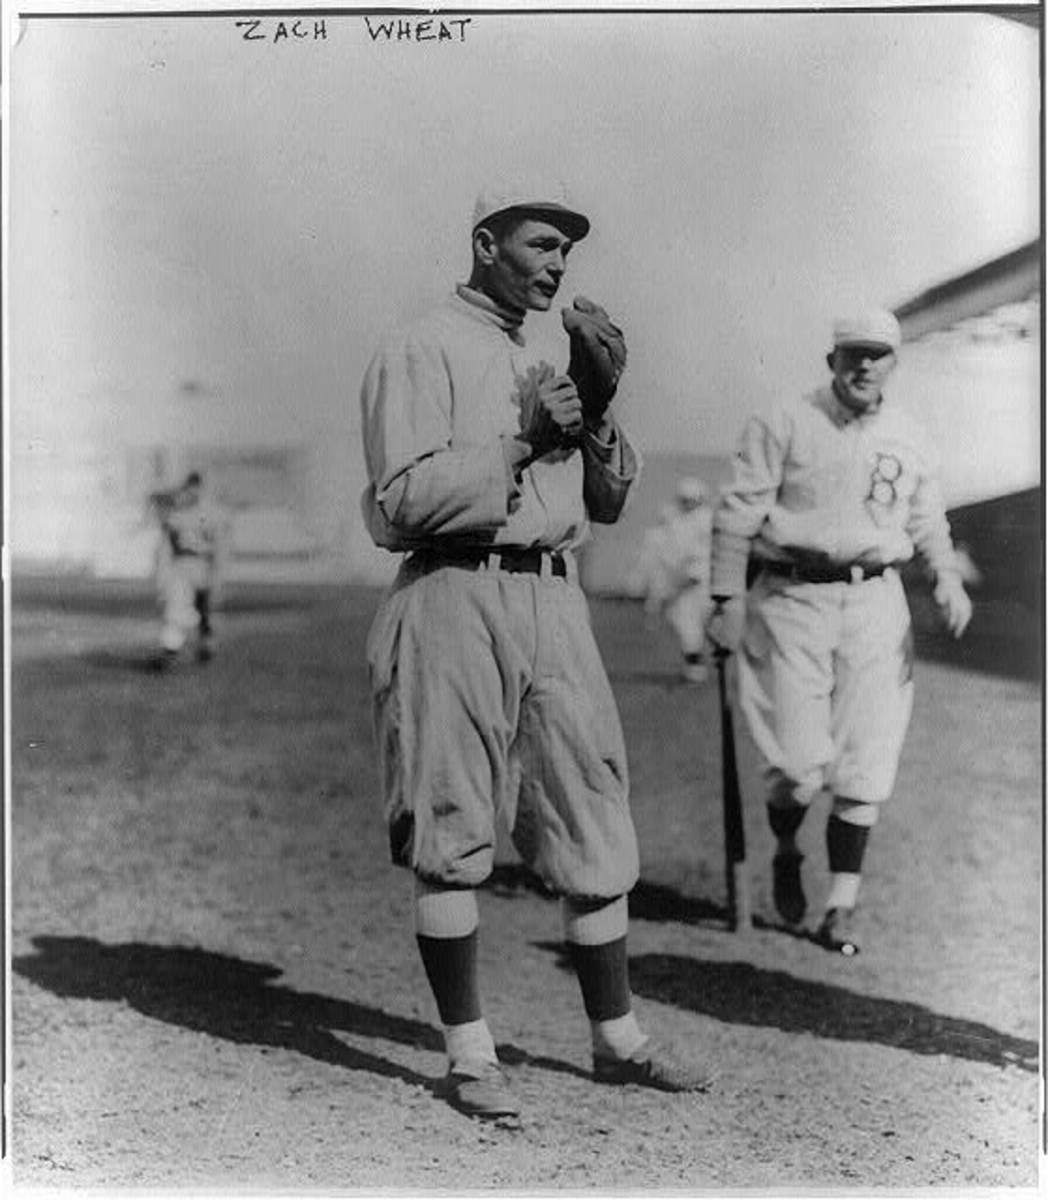 Zack Wheat, seen during the 1914 season in Brooklyn, had one of the longest careers ever with the Dodgers, spending 18 seasons with the franchise.